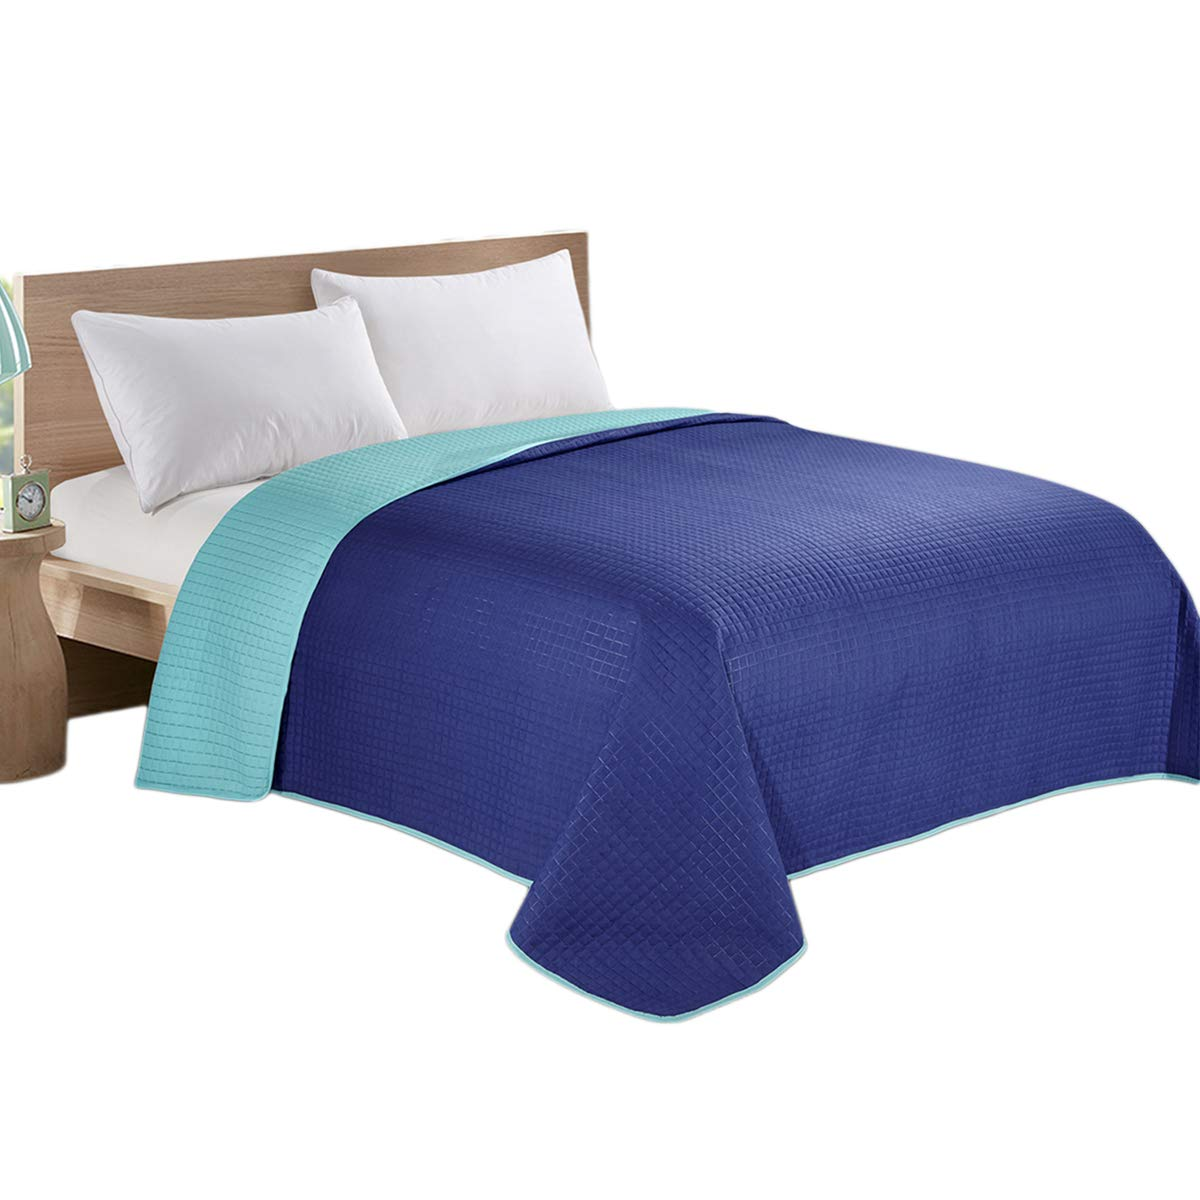 HollyHOME Reversible Super Soft Solid Single Quilted Bed Quilt Bedspread Comforter Bed Cover, Blue and Teal, King - HollyHOME